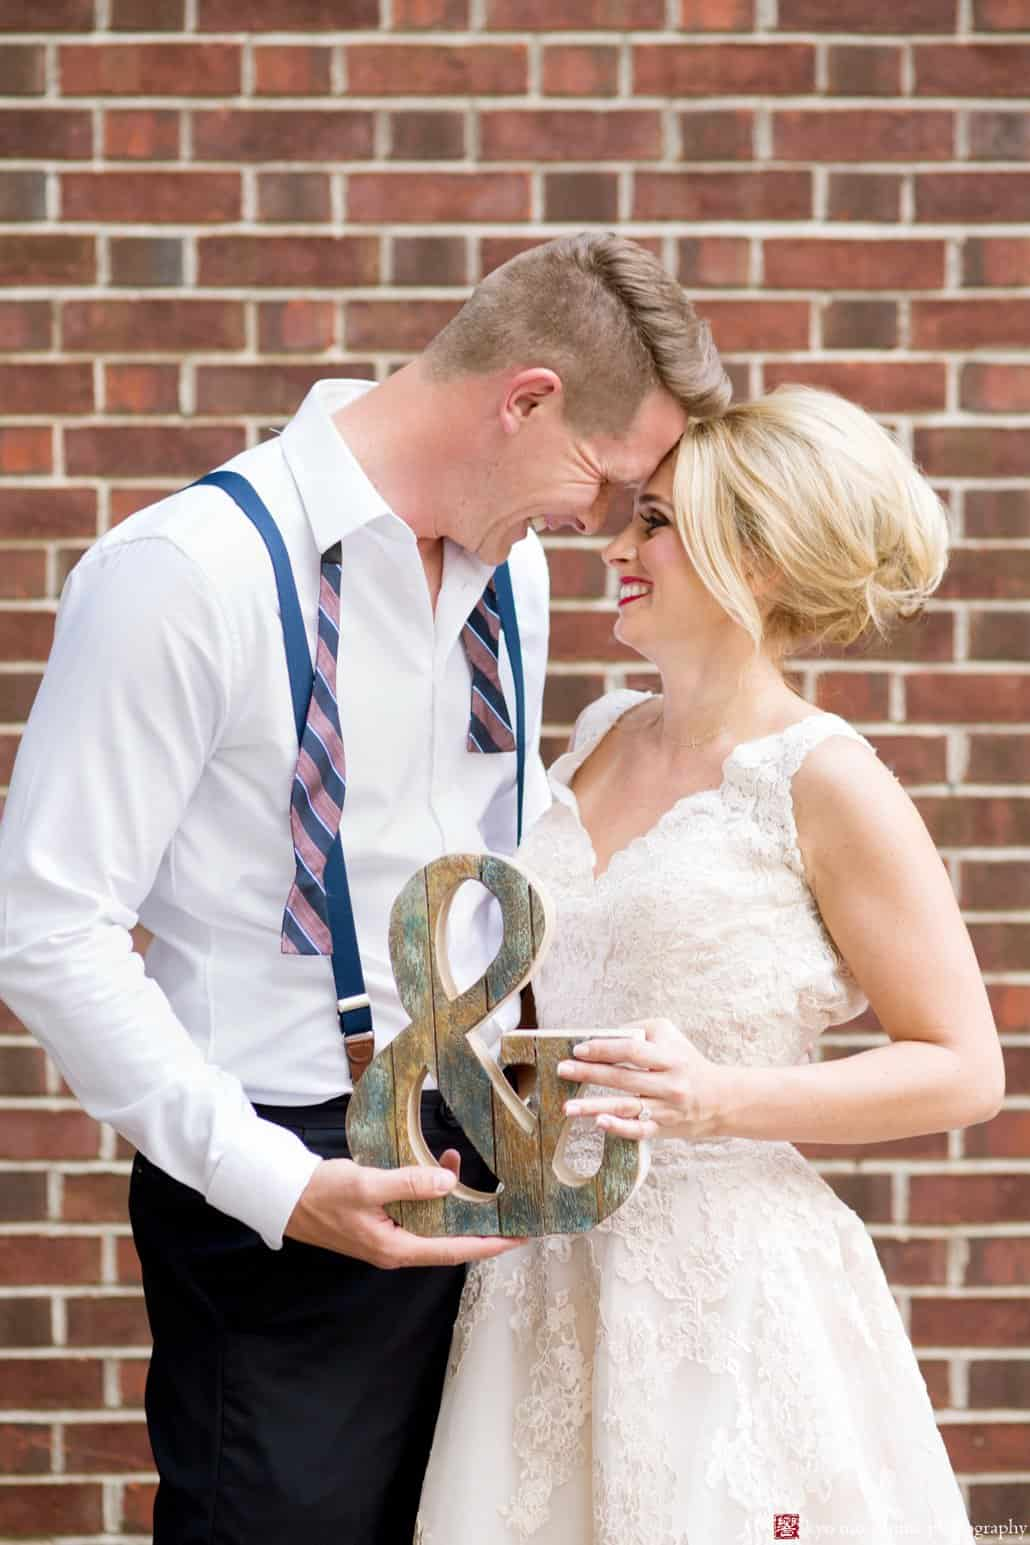 Bride and groom outside brick wall behind Nassau Inn in Princeton; bride wears BHLDN wedding dress and groom holds ampersand sign. Styled by Kristin Rockhill of Details of I Do, photographed by Kyo Morishima